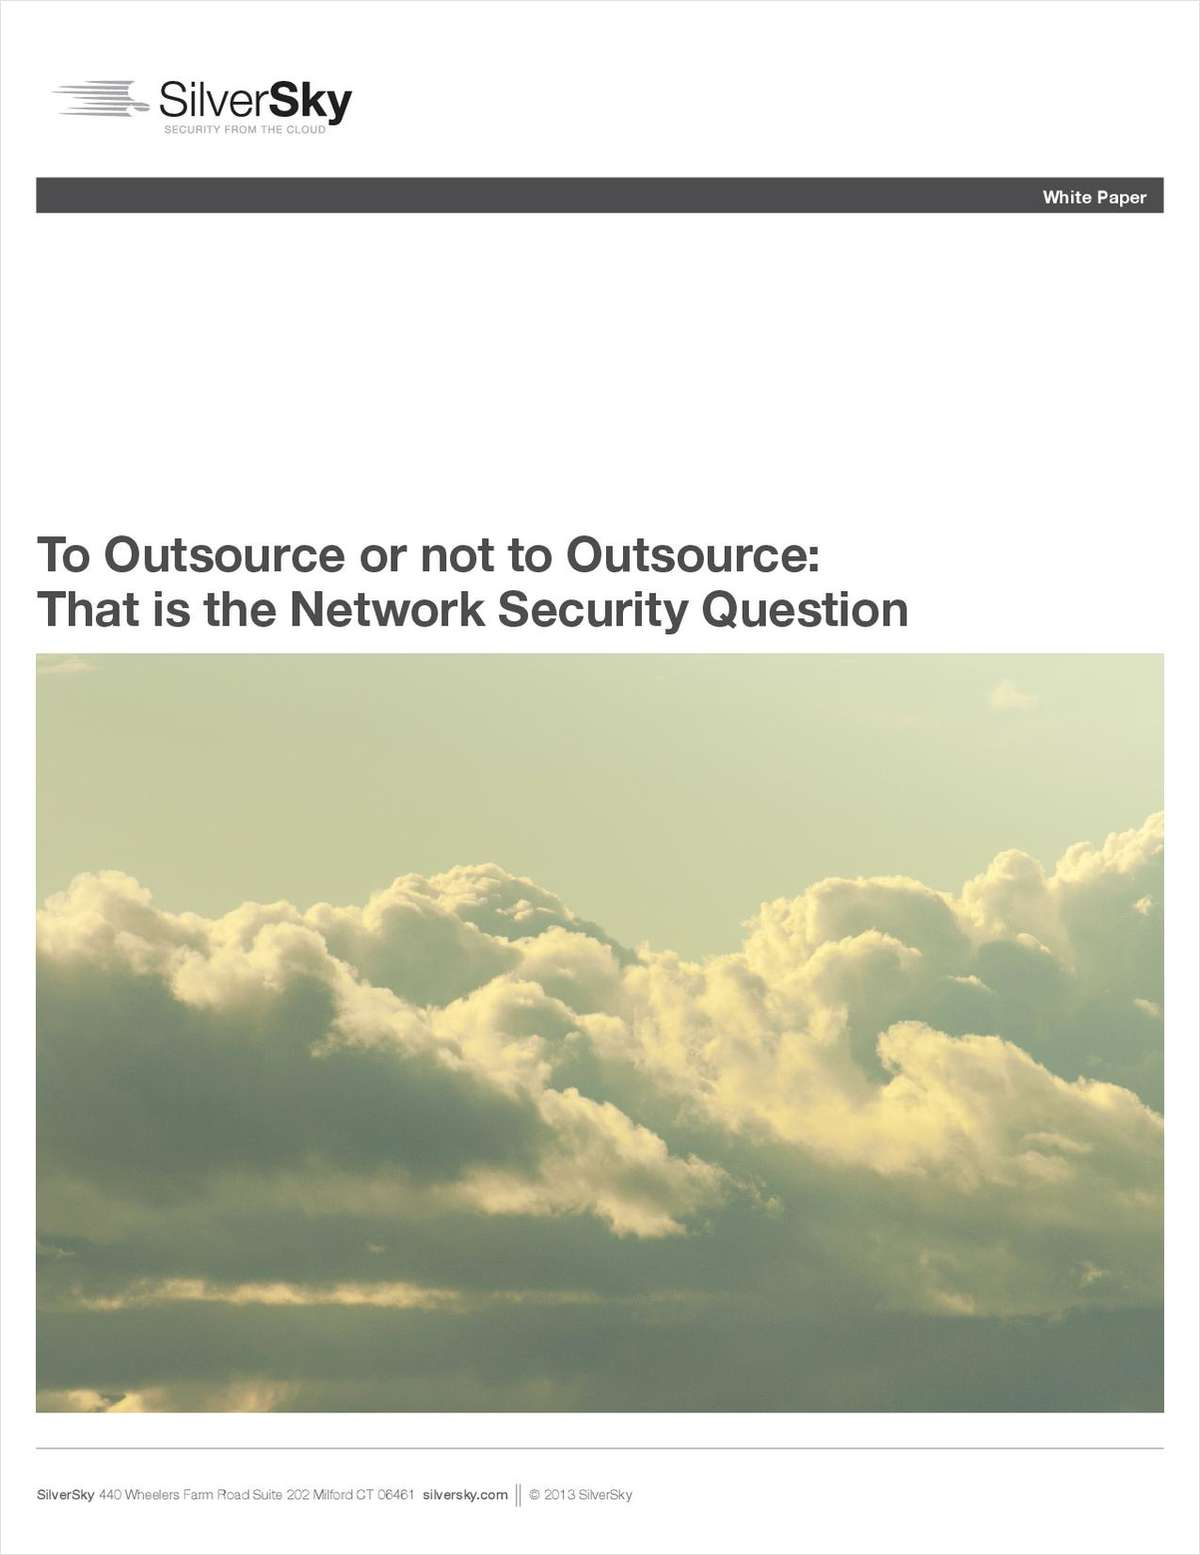 To Outsource or Not to Outsource: That is the Network Security Question